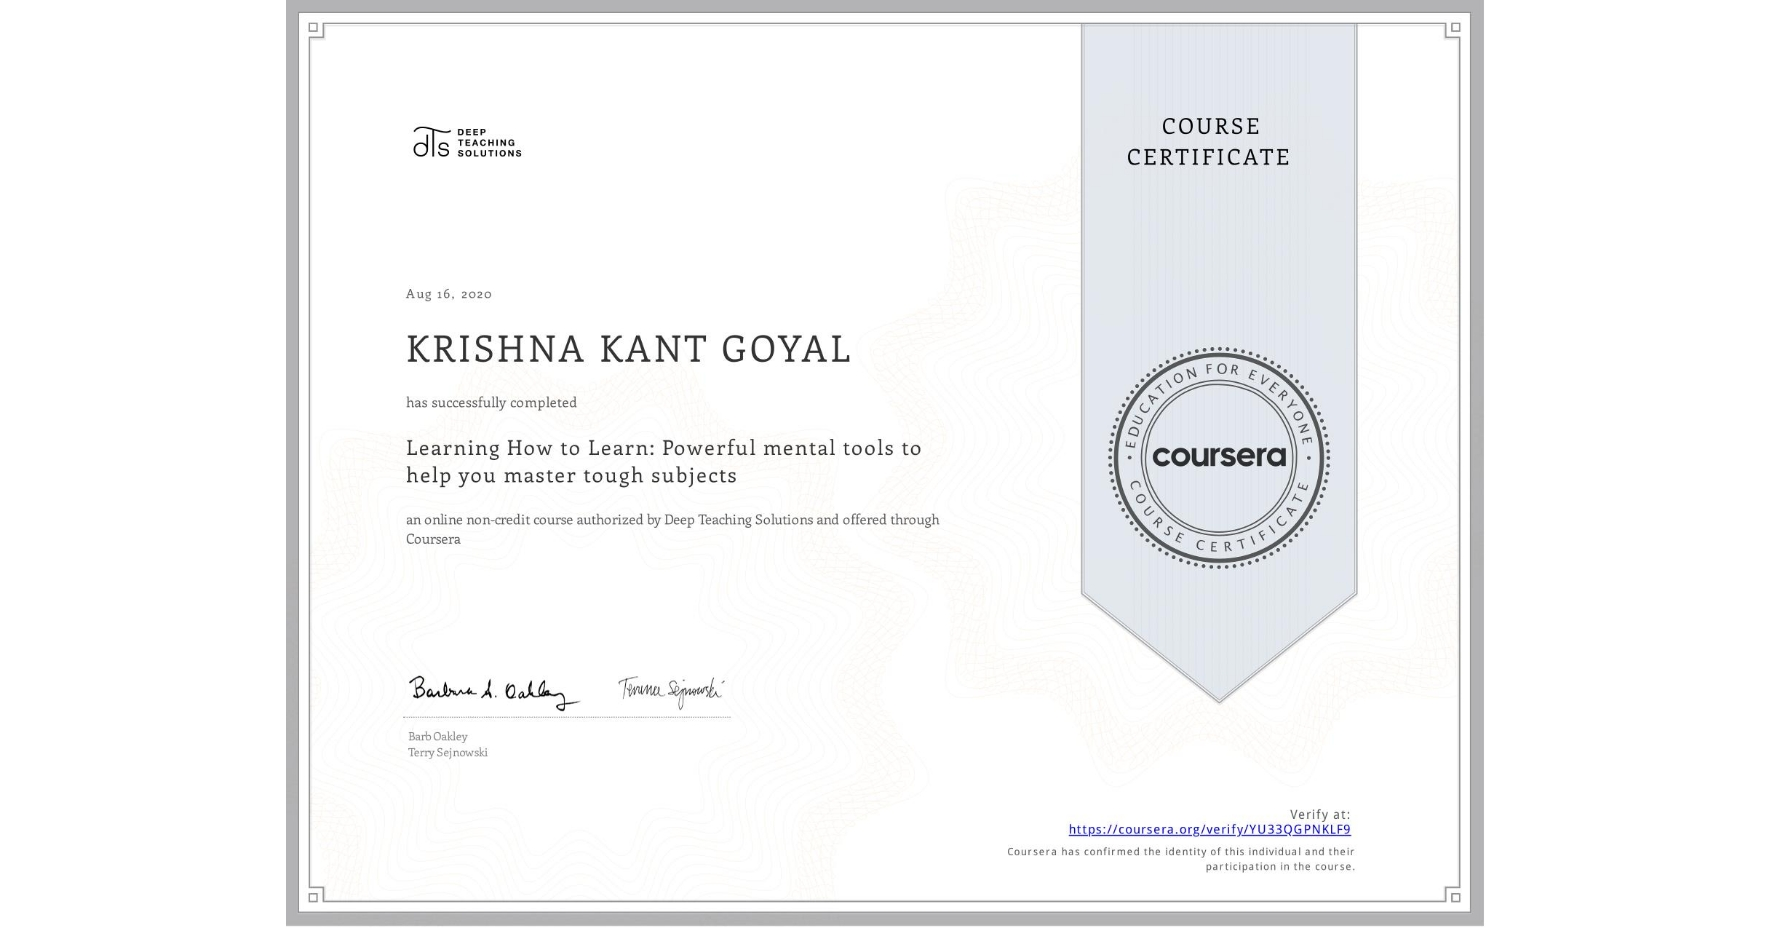 View certificate for KRISHNA KANT  GOYAL, Learning How to Learn: Powerful mental tools to help you master tough subjects, an online non-credit course authorized by McMaster University & University of California San Diego and offered through Coursera